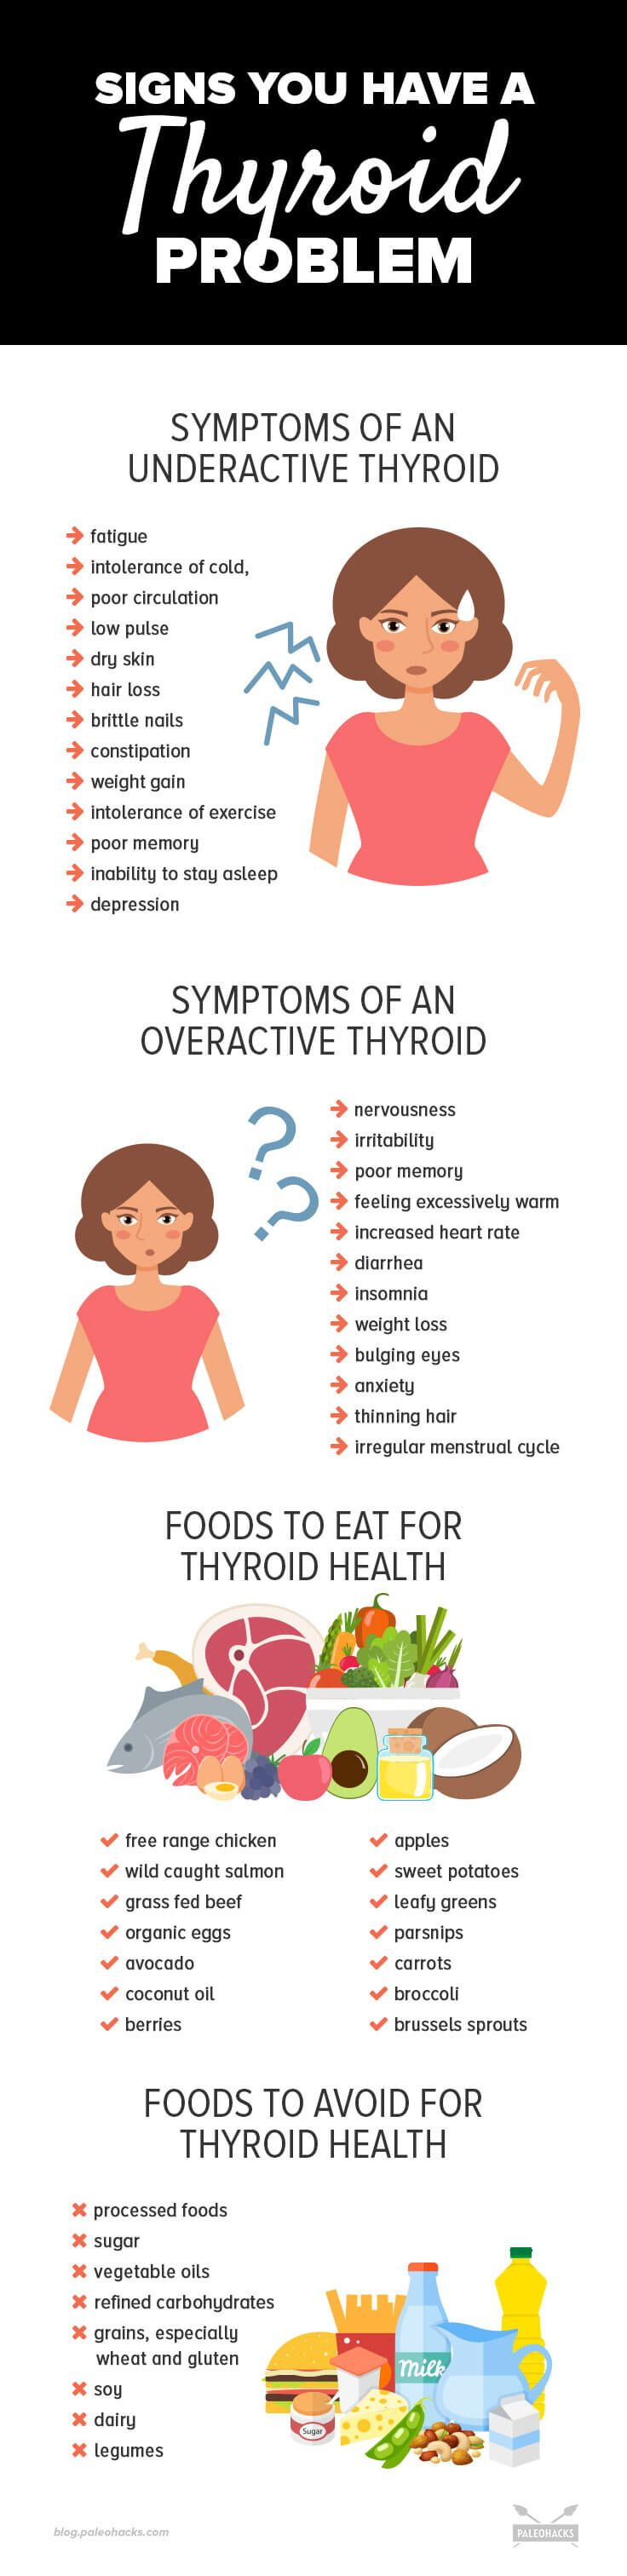 Do you suffer from any of these symptoms? Get our full thyroid guide here: http://paleo.co/thyroid101